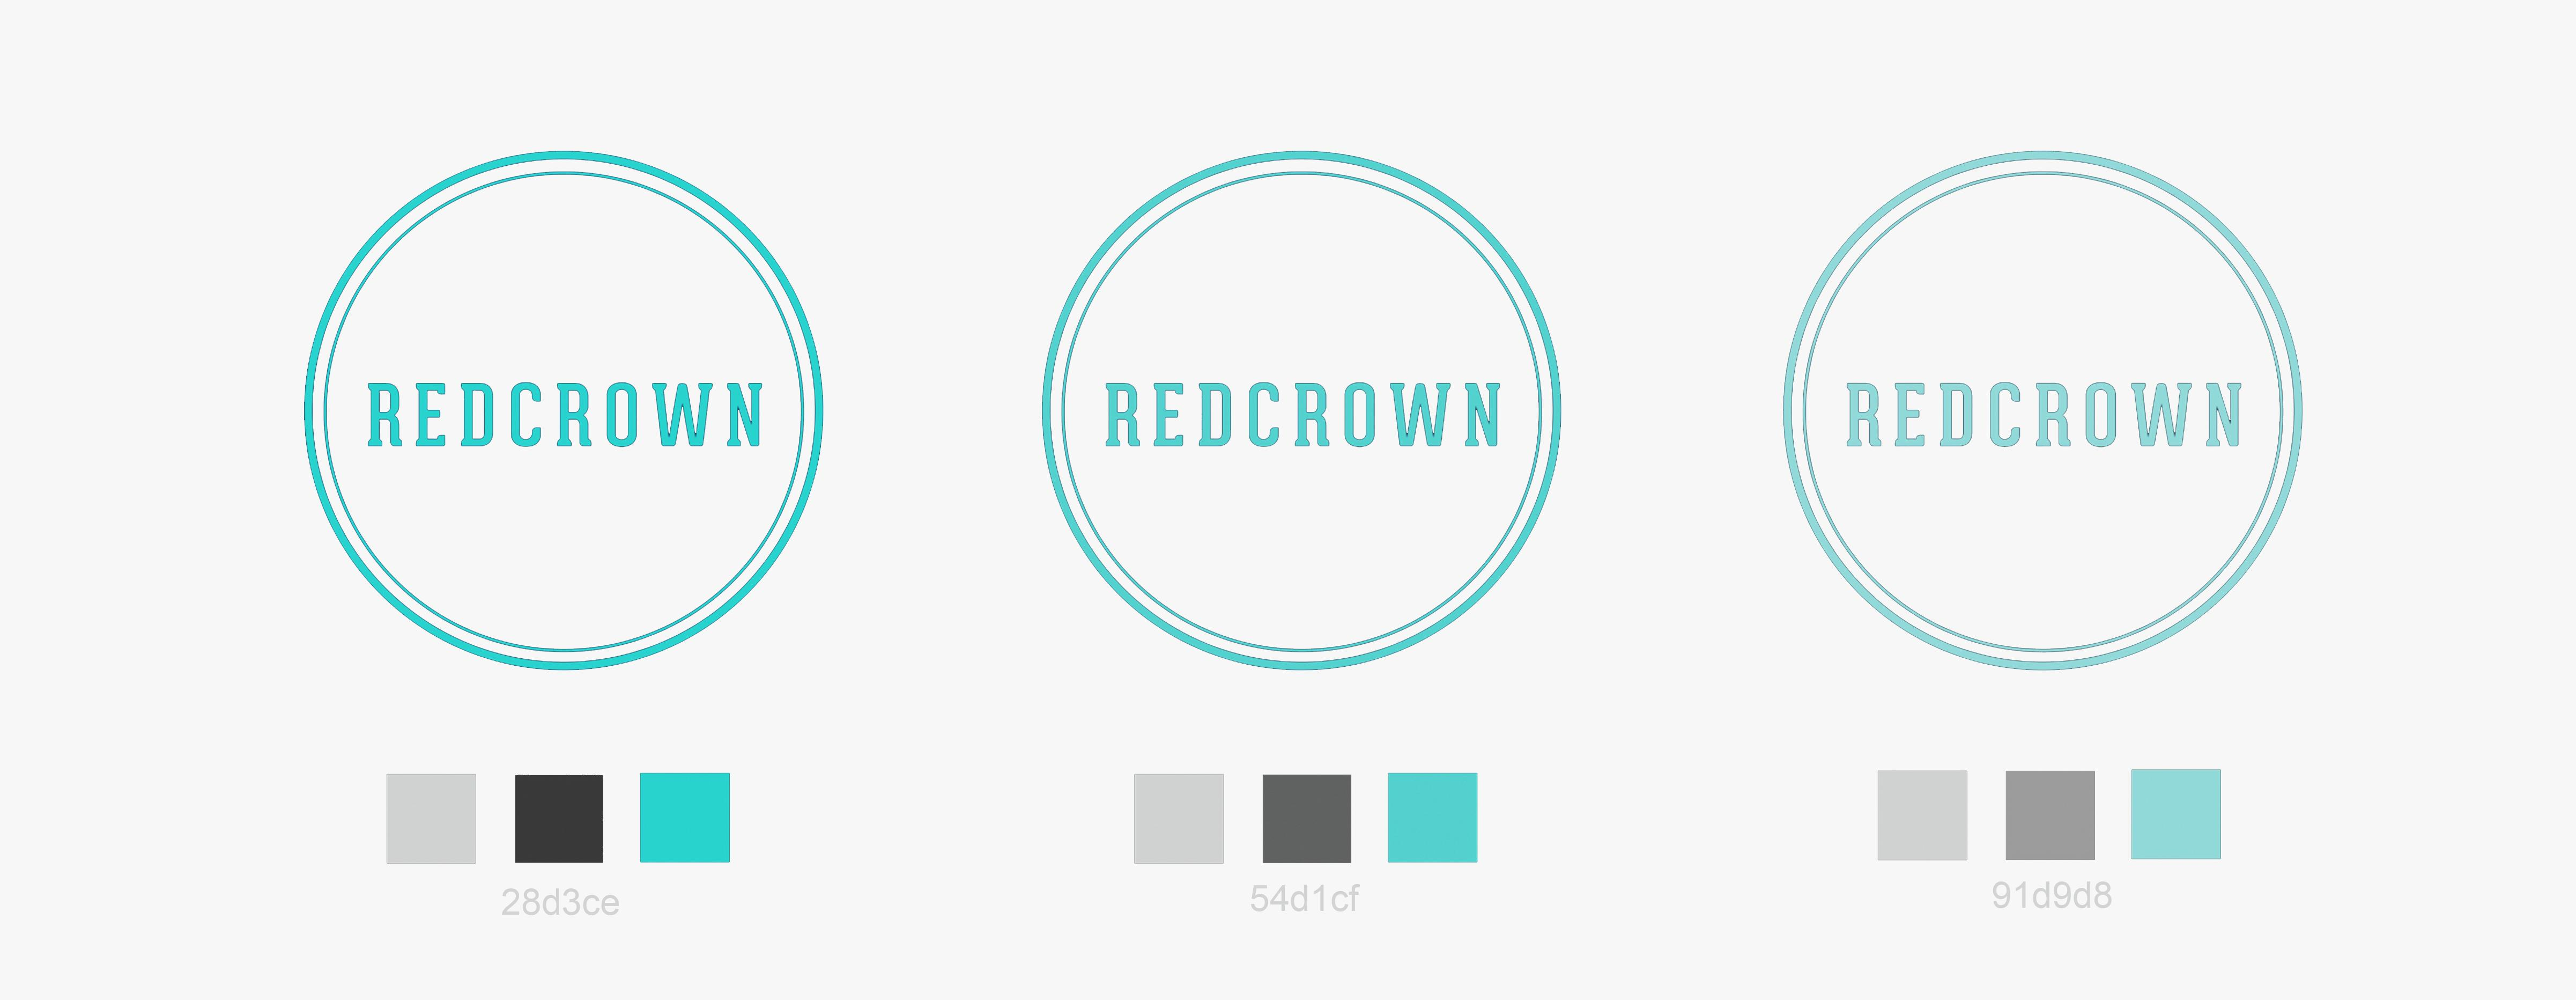 RedCrown -  Canada - image 6 - student project